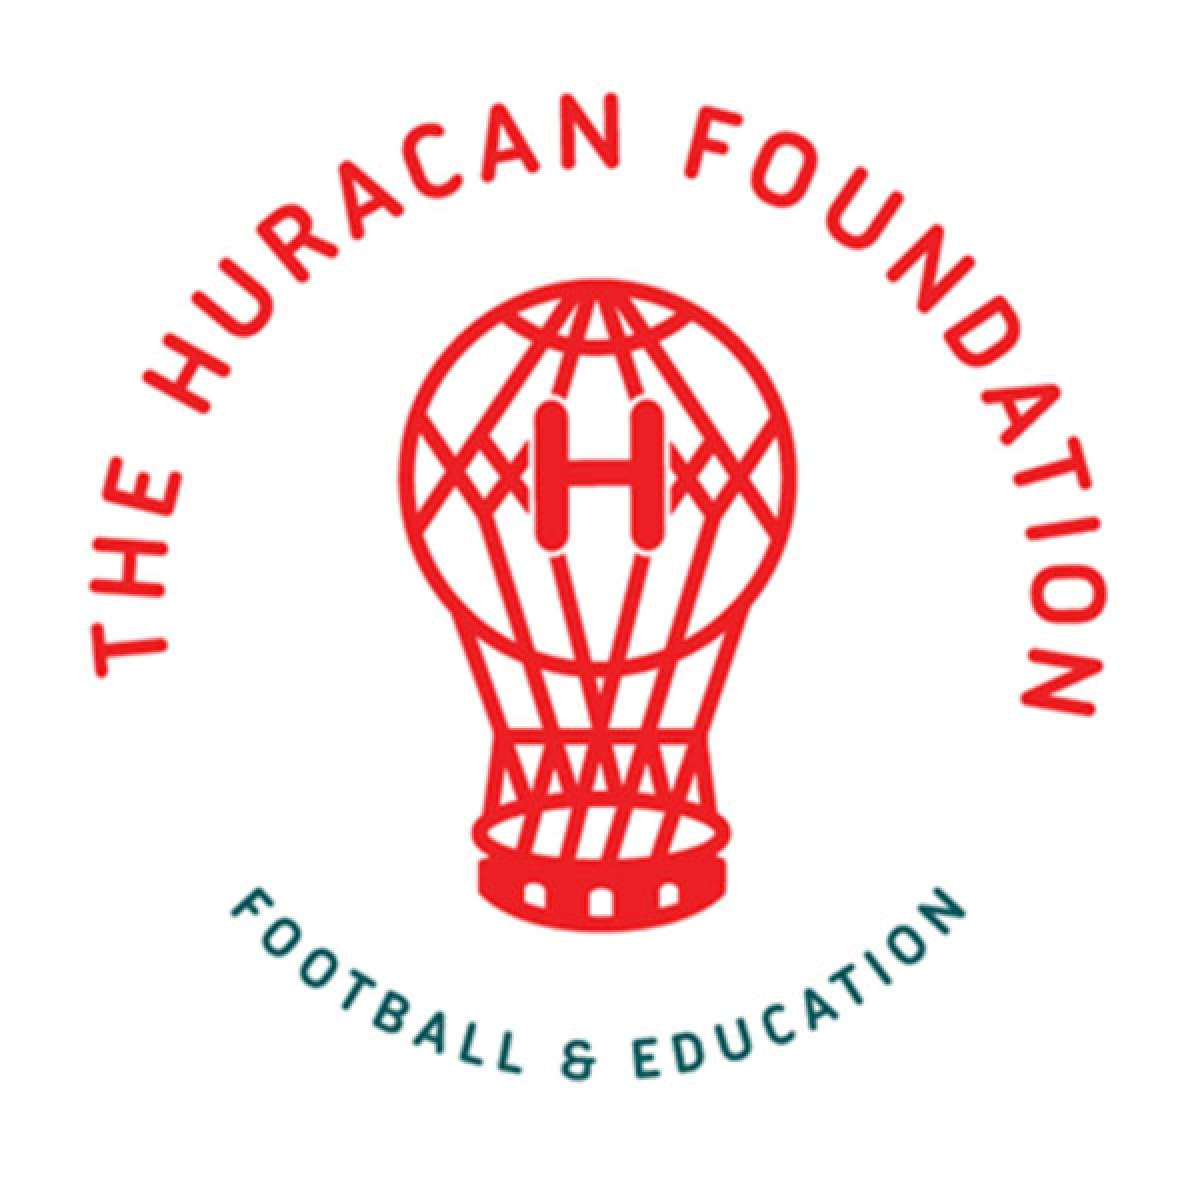 The Huracan Foundation eCards